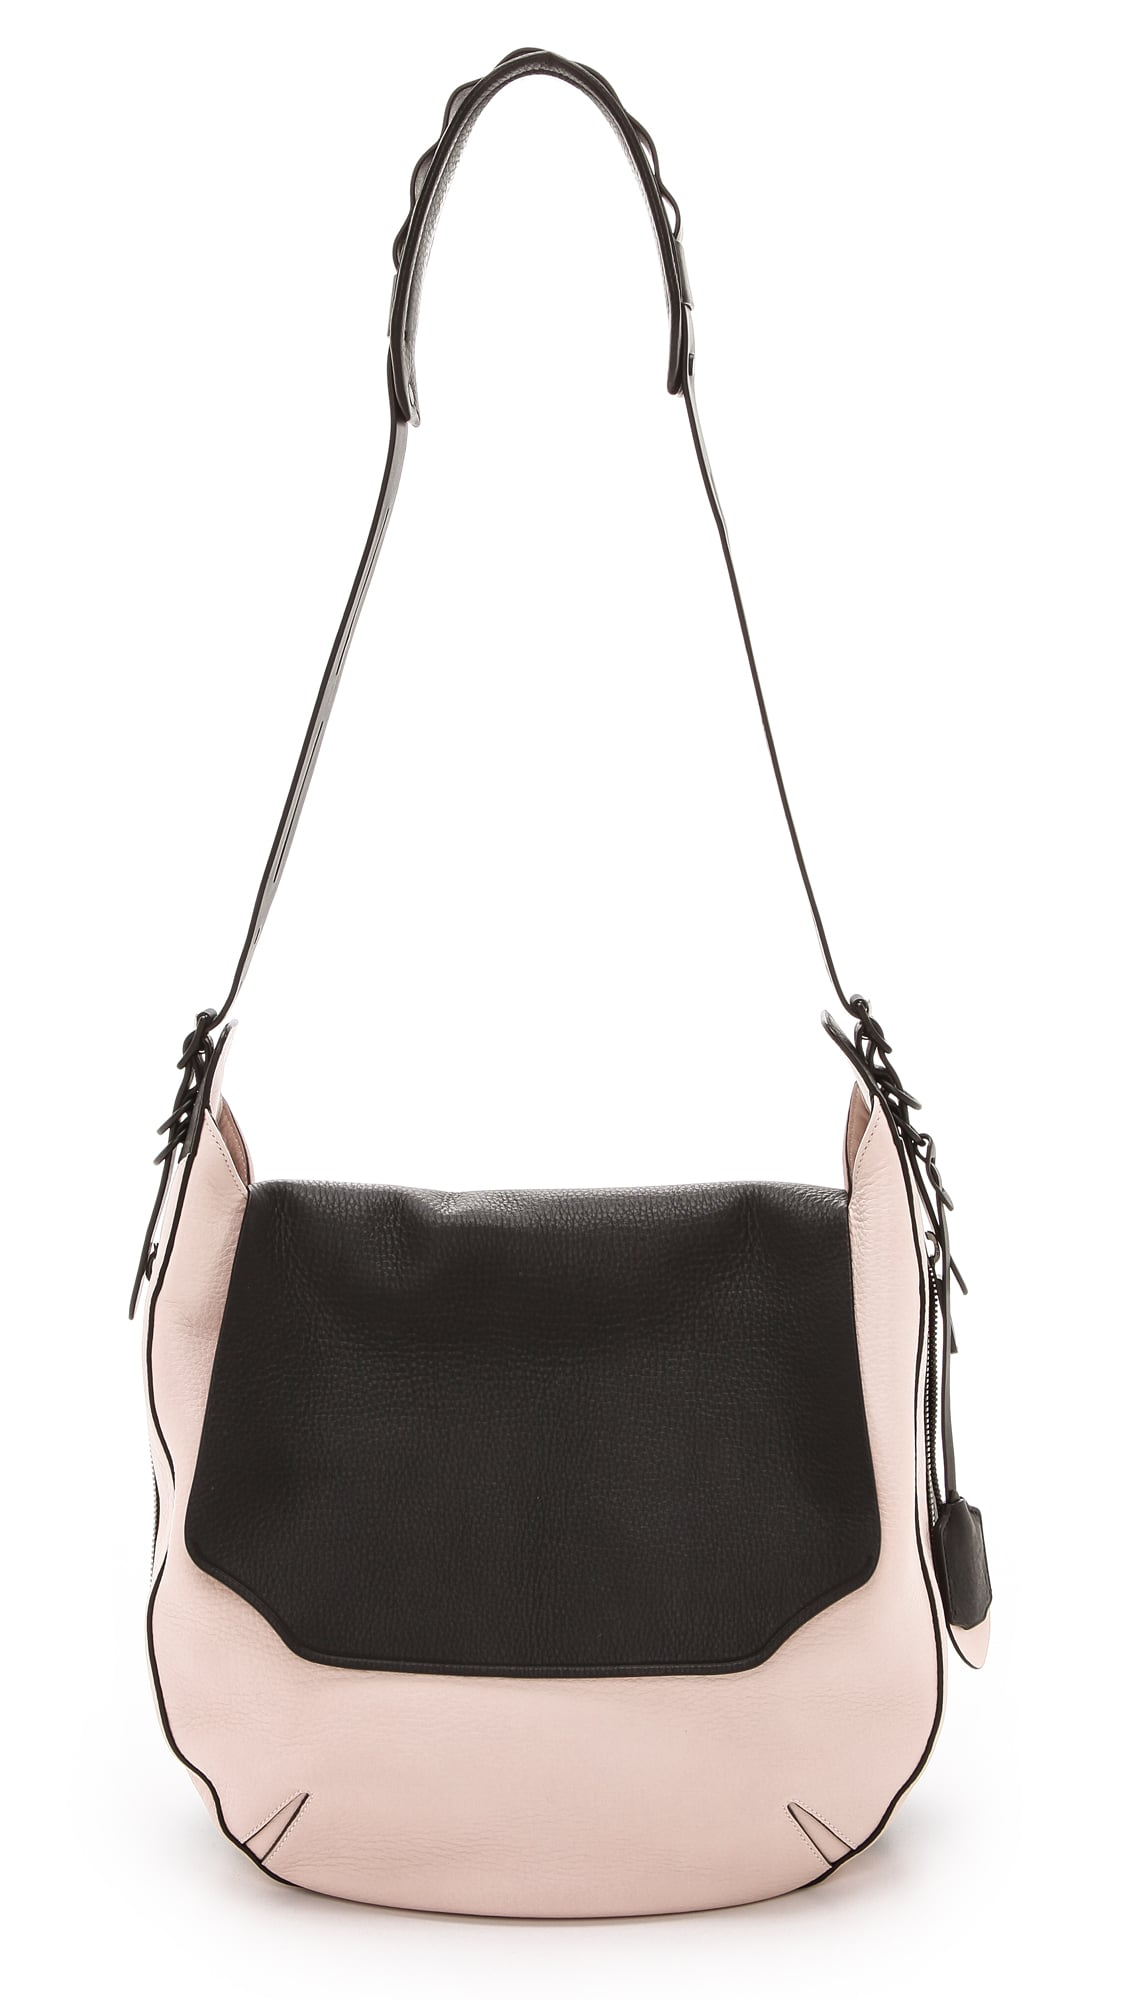 Rag & Bone Bradbury Flap Bag